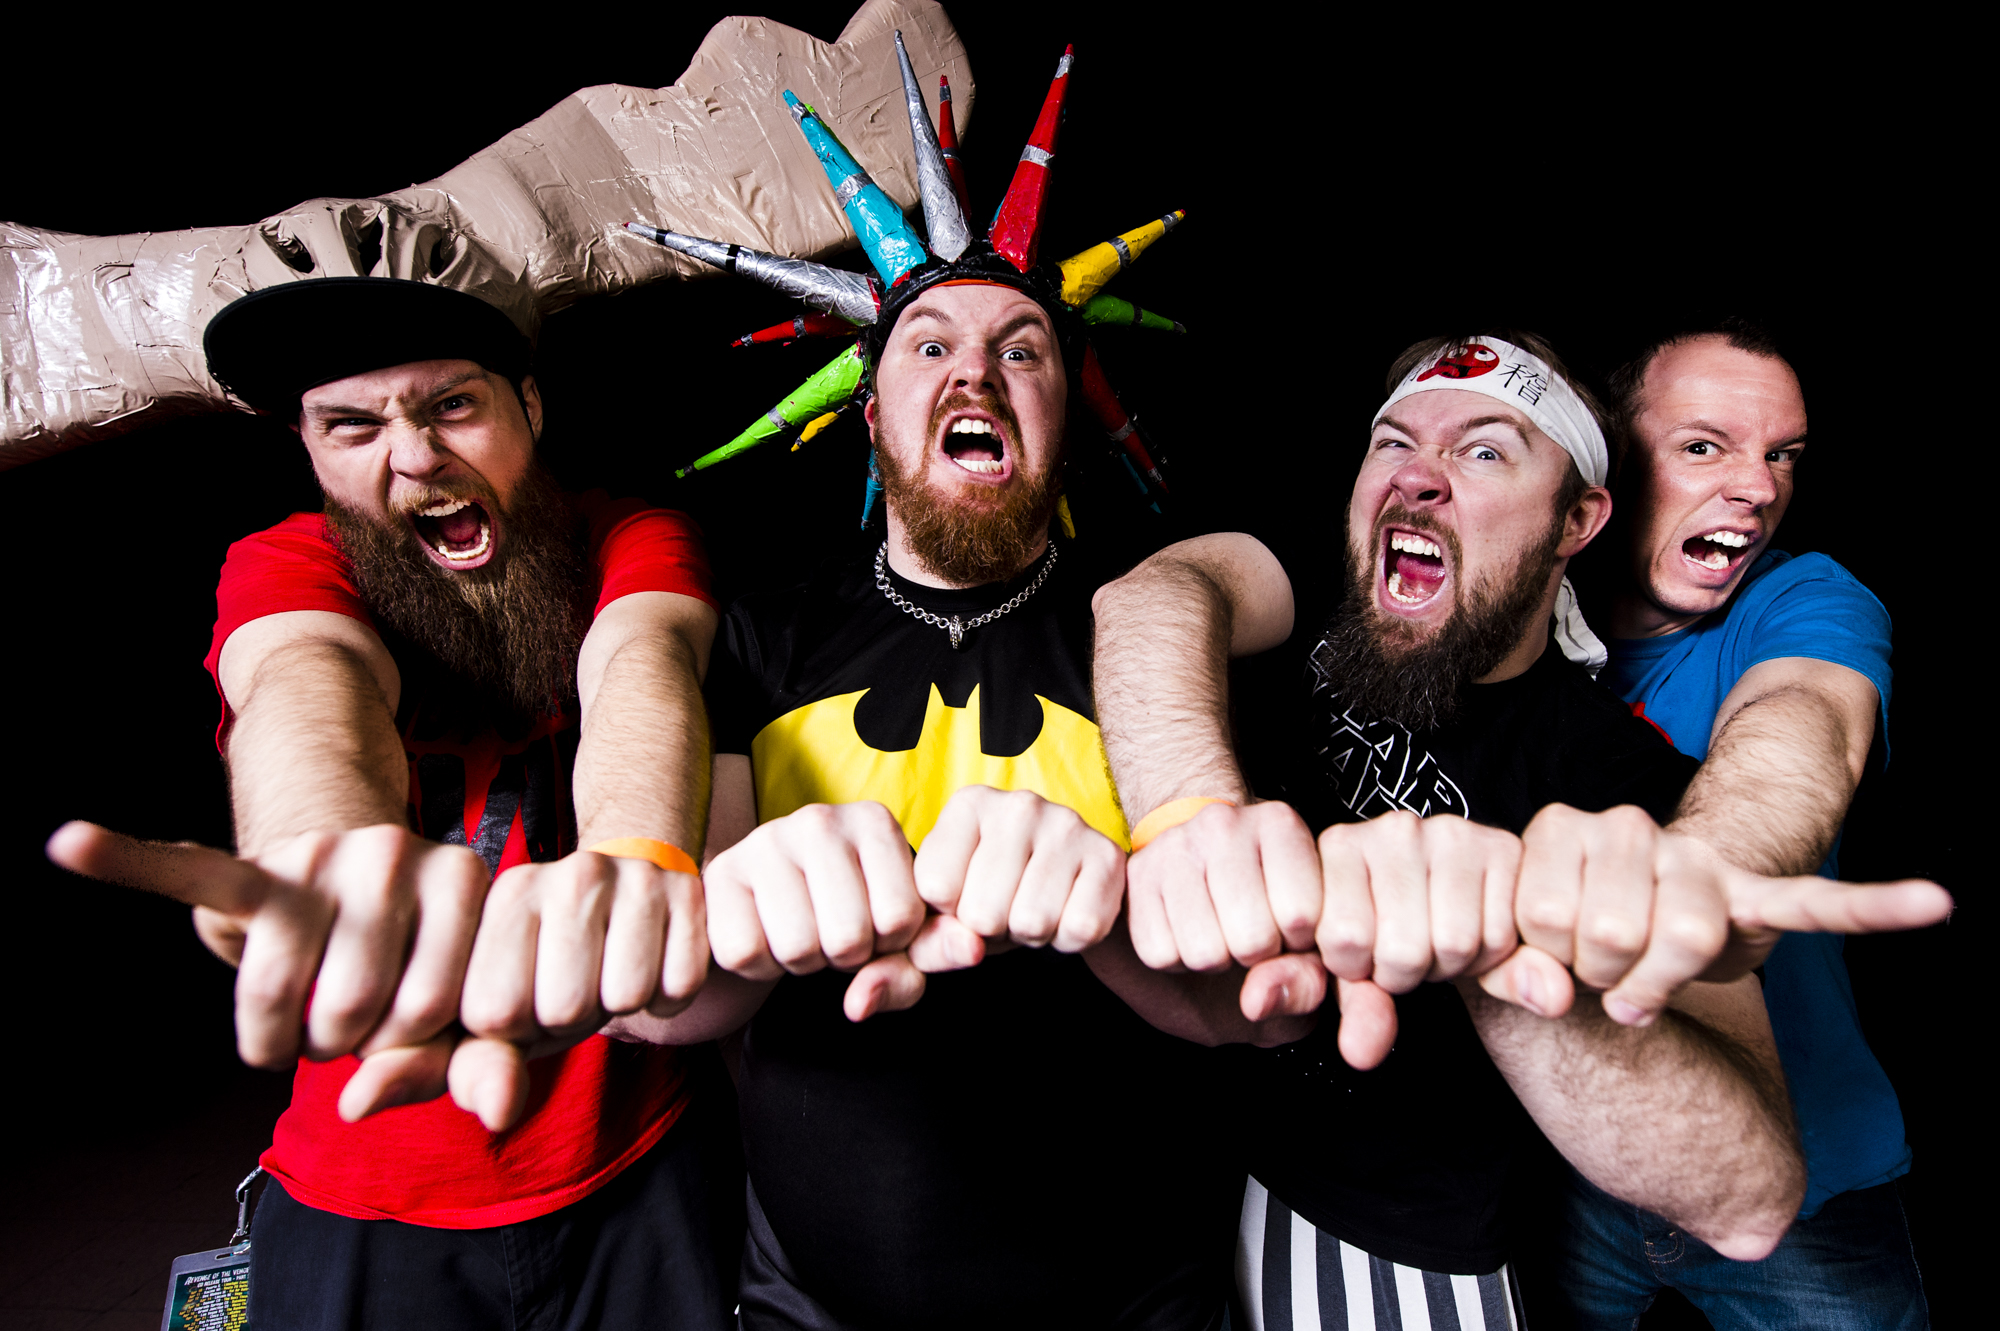 The Kings of Comedy Rock PSYCHOSTICK Confirmed To Play UK's 2018 Amplified Fest